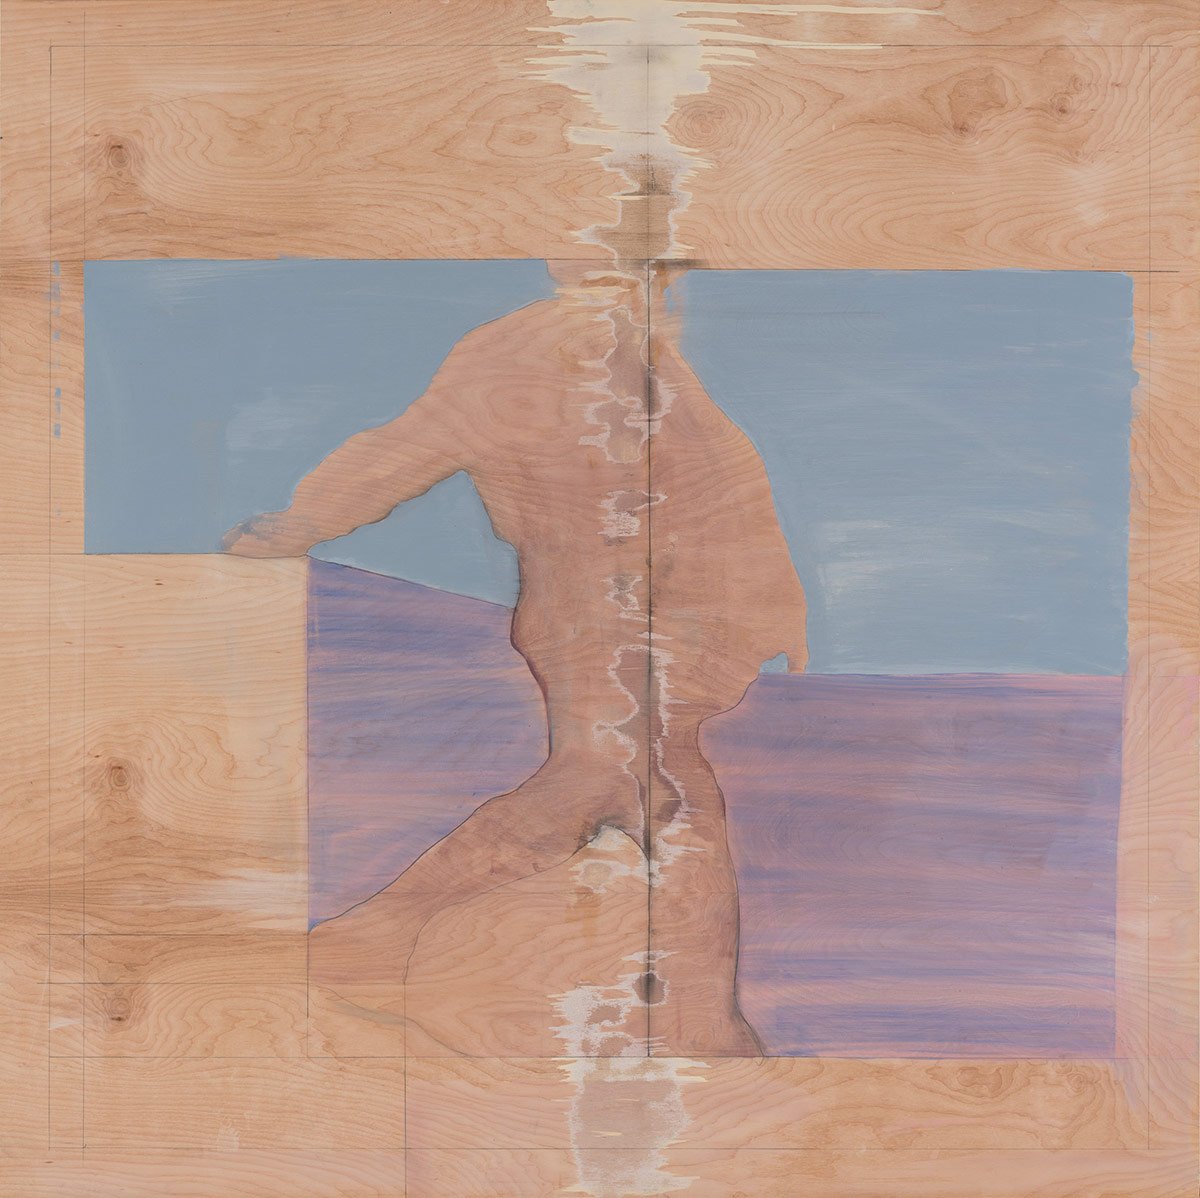 """Landscape with figure (from the pages of an old book),  2015. Acrylic, acrylic polymer and graphite on wood panel. 48""""x48"""""""